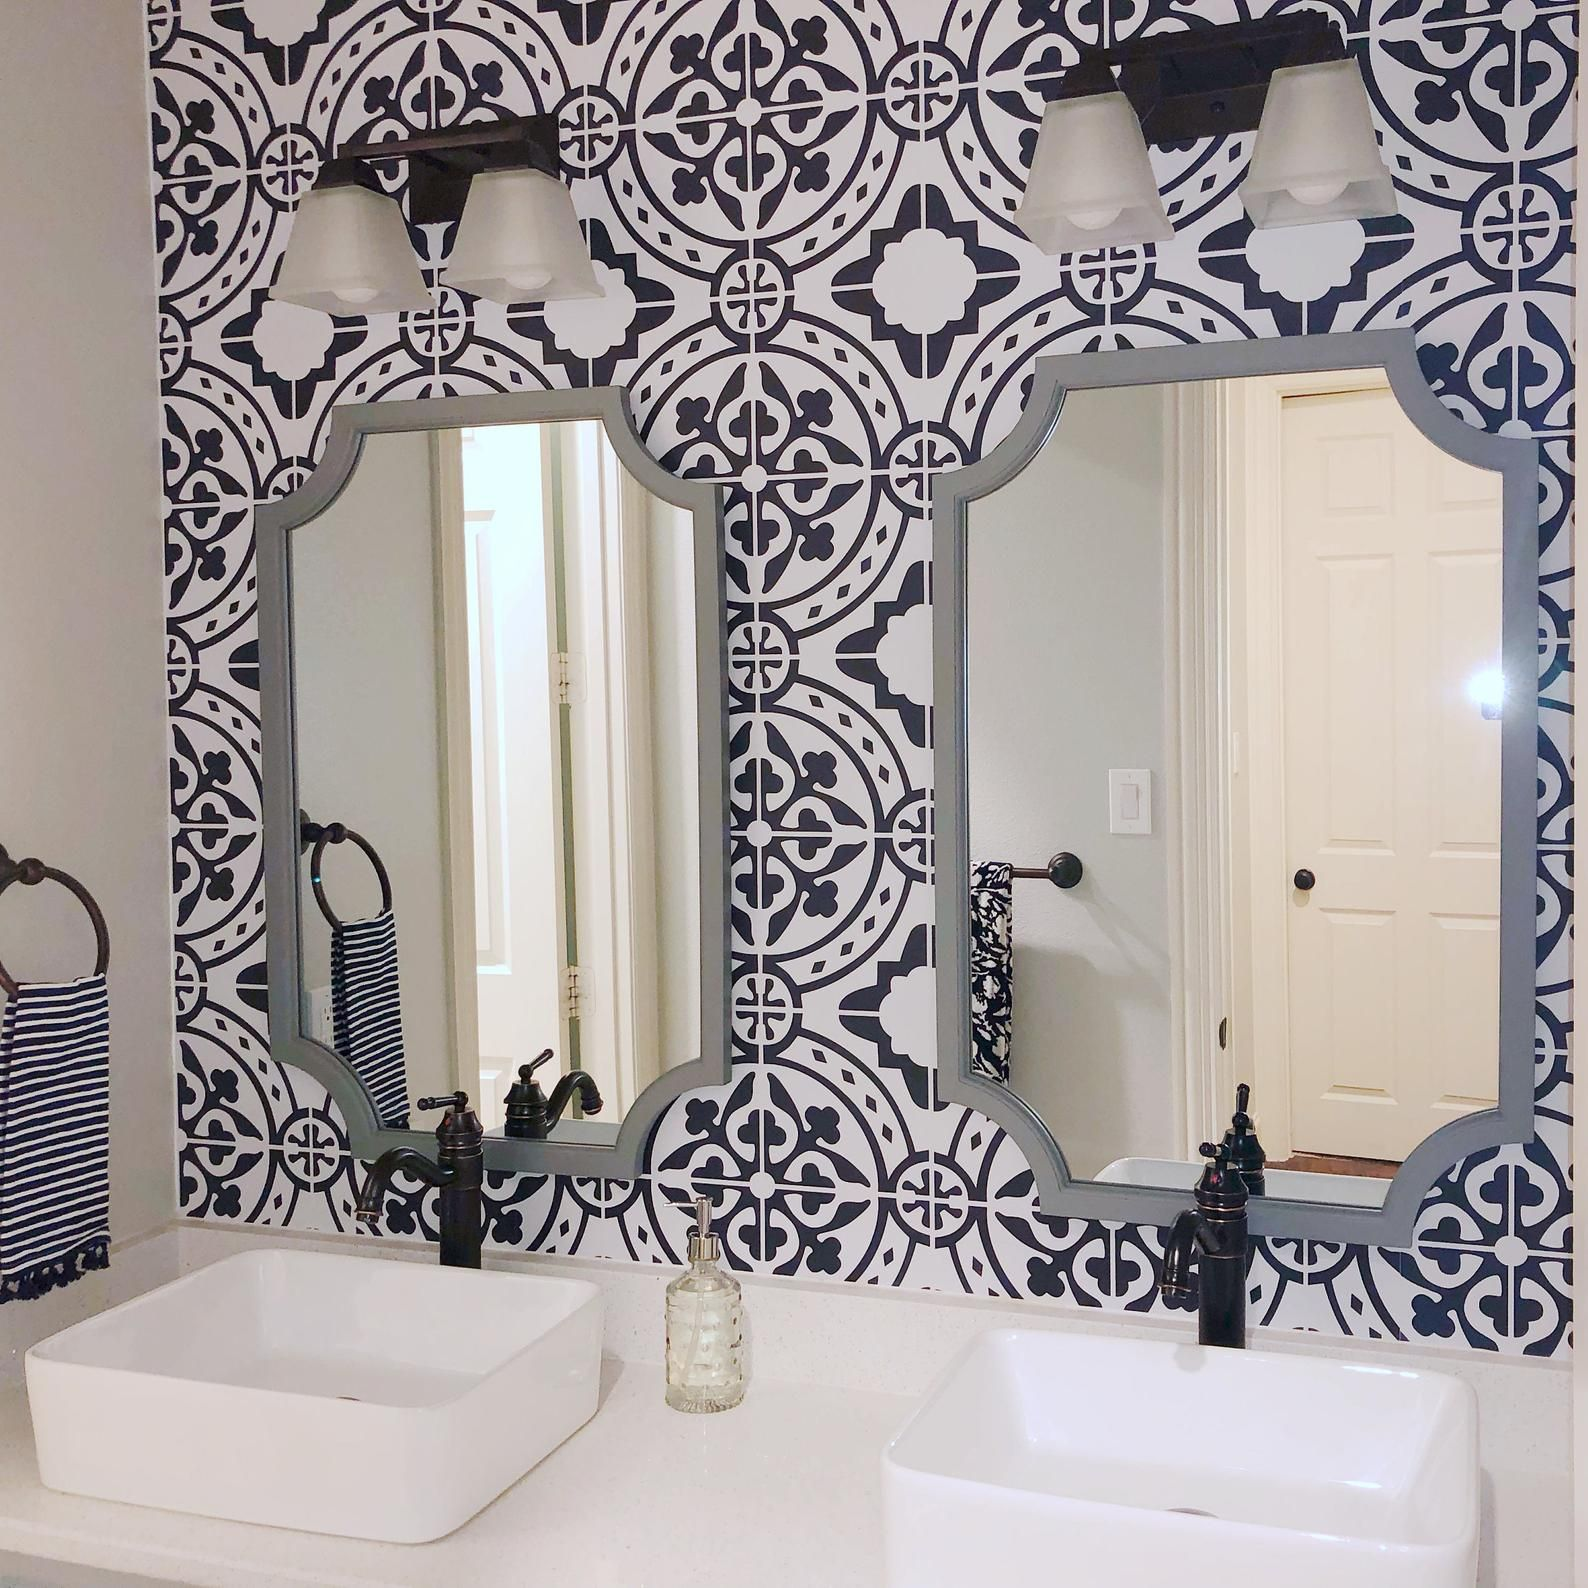 Moroccan Tile Peel And Stick Wallpaper Removable Wallpaper Etsy Bathroom Wallpaper Modern Peel And Stick Wallpaper Tile Wallpaper